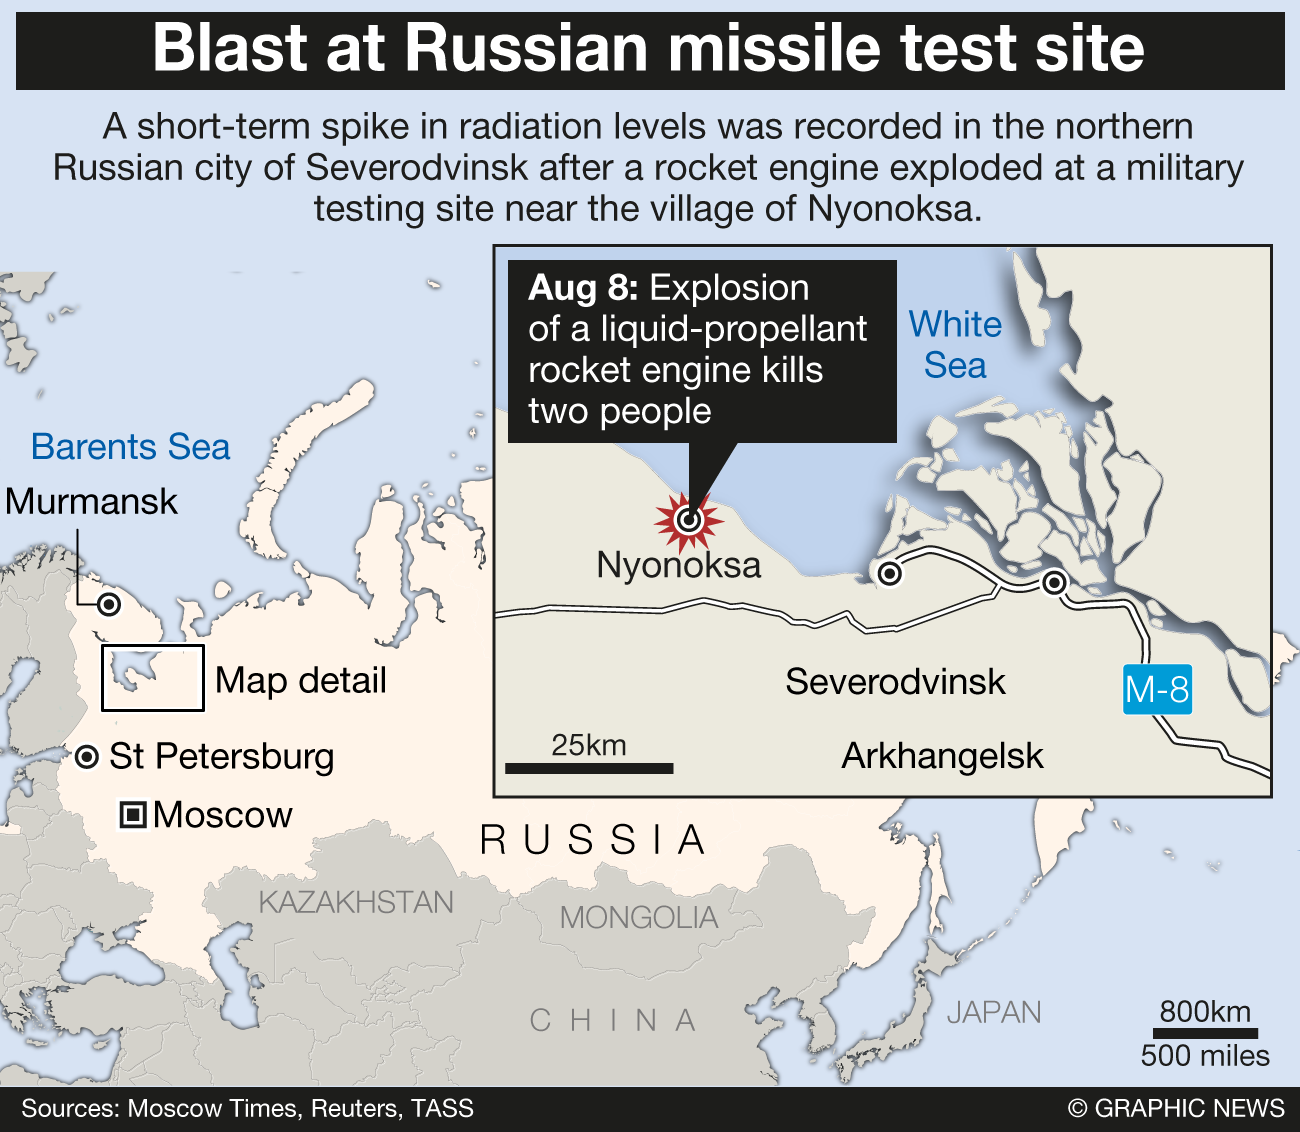 NED-106-Blast at Russian missile test site - 0